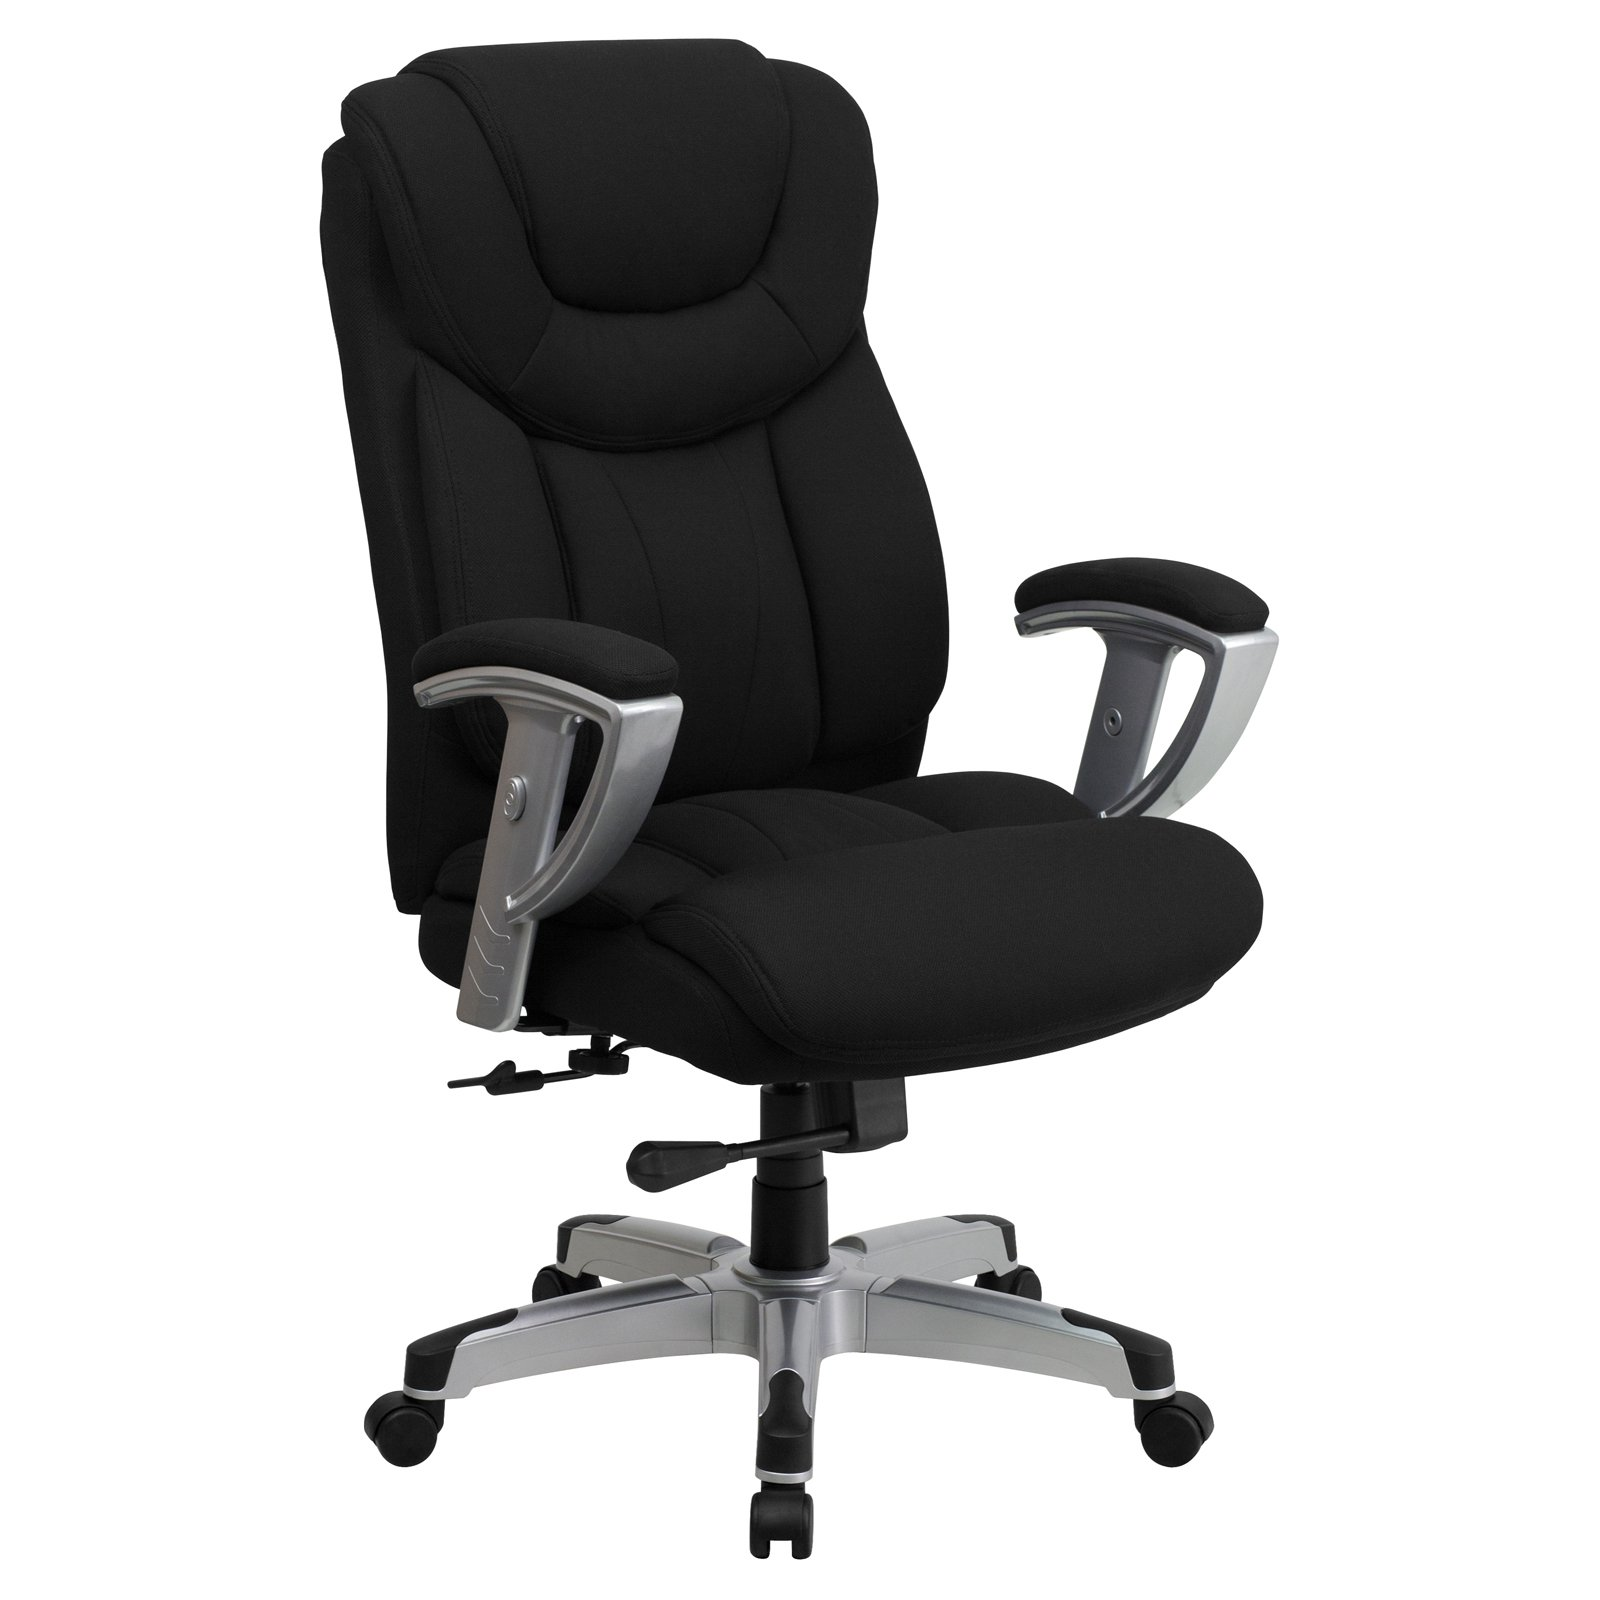 Flash Furniture HERCULES Series 400-Pound Capacity Big & Tall Black Fabric Executive Swivel Office Chair with Height and Width Adjustable Arms